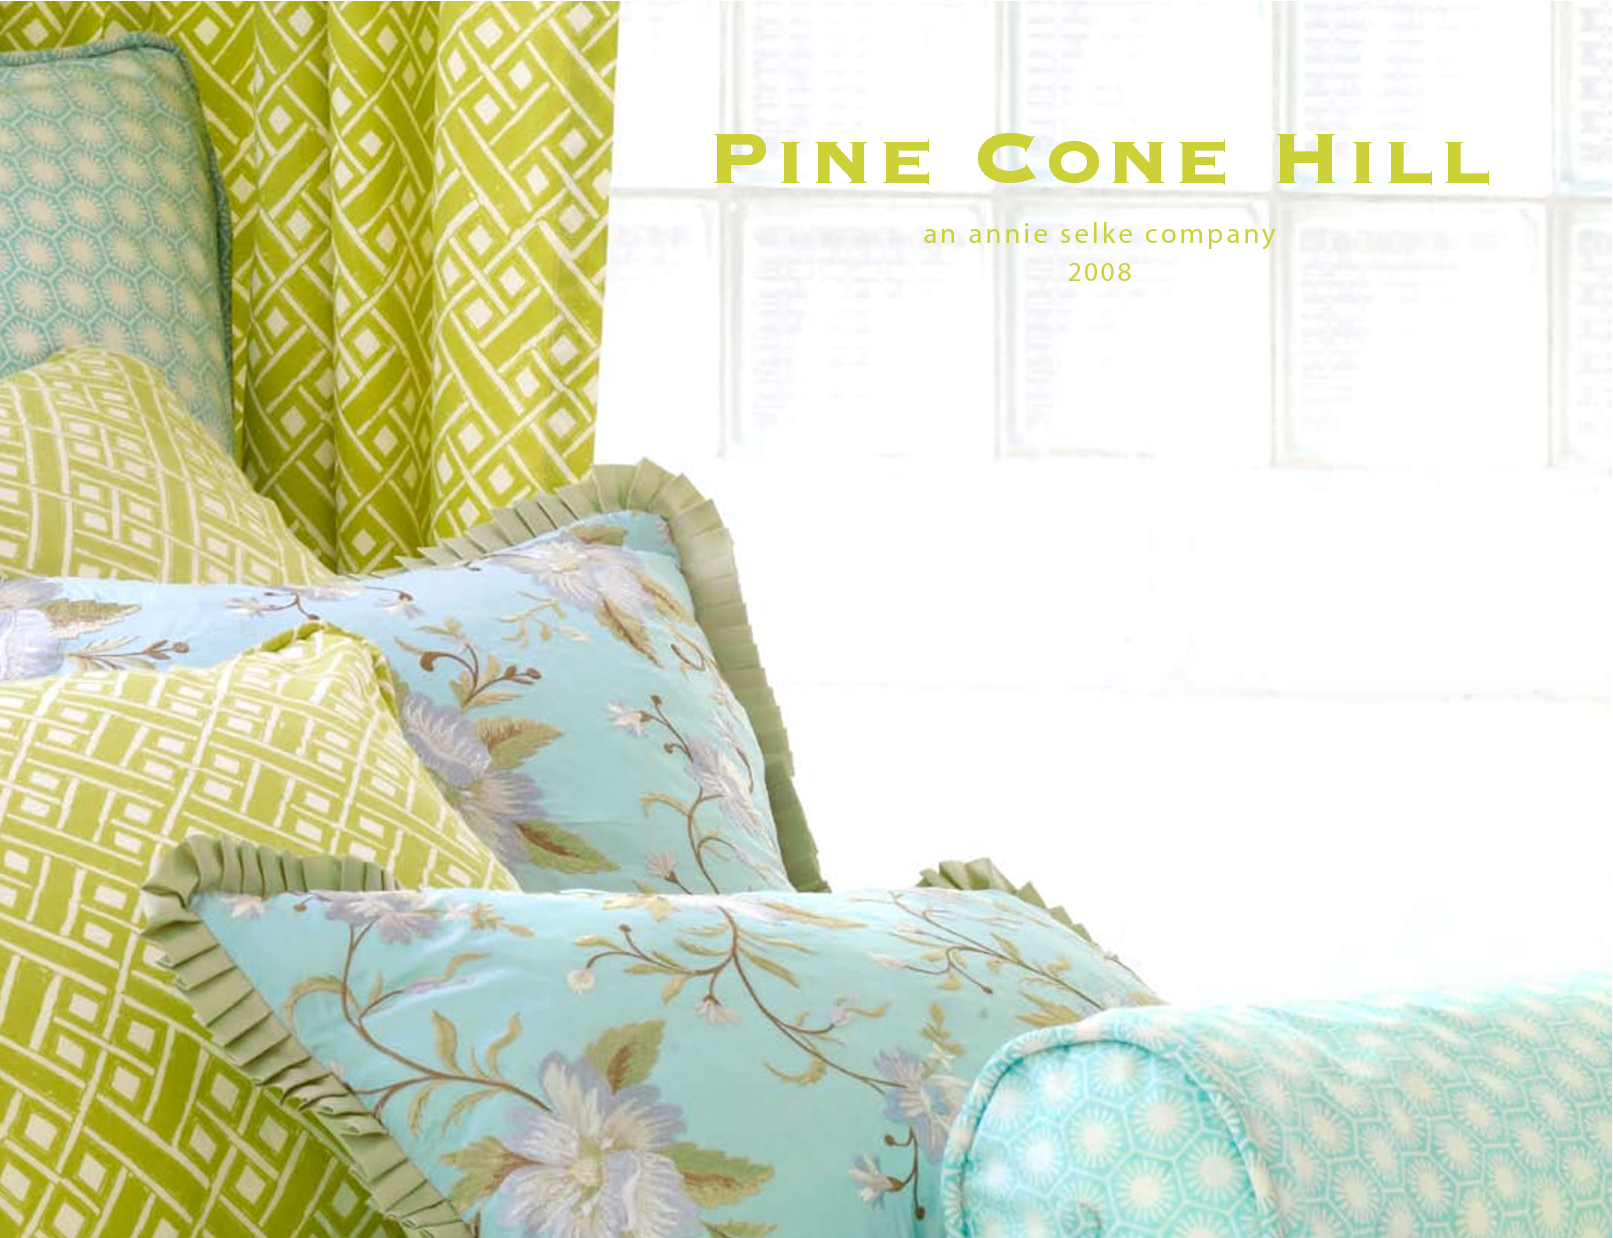 Lovely Pine Cone Hill Bedding For Interesting Bed Ideas: Awesome Pine Cone Hill Bedding In Blue Green Theme With Floral Pattern For Bed Ideas